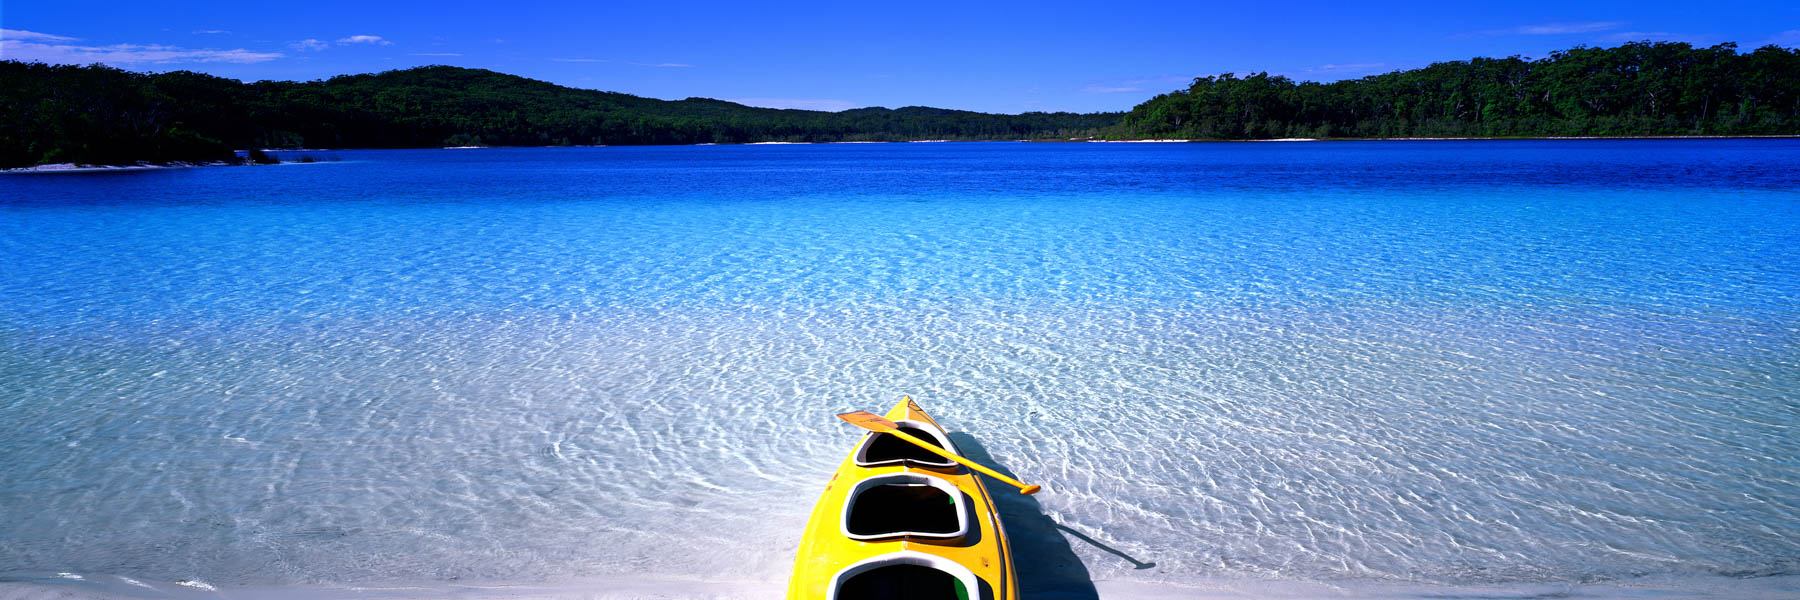 A bright yellow canoe on the shore of Lake Mackenzie, Fraser Island, ready for a grand adventure, Qld, Australia.